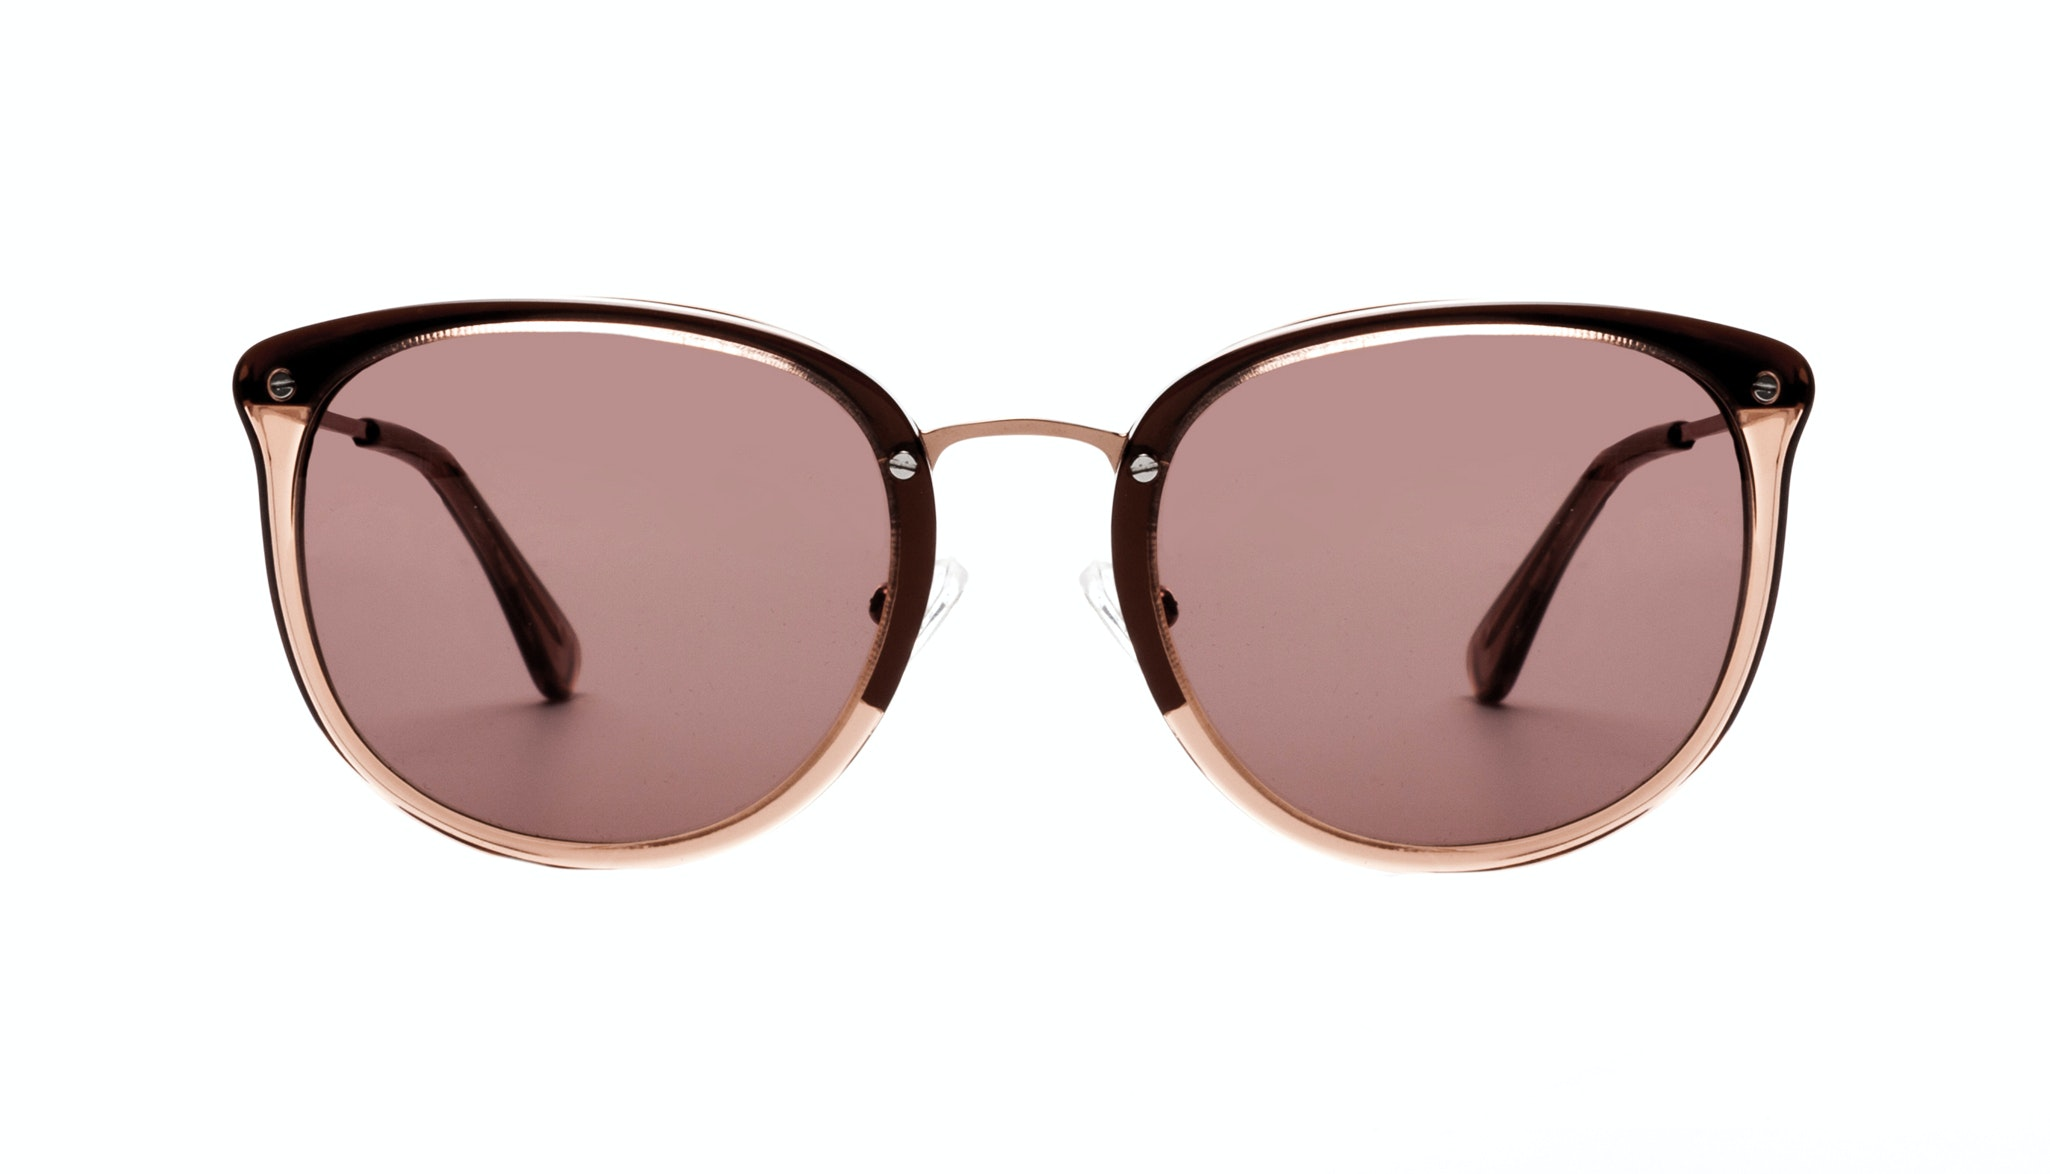 Affordable Fashion Glasses Round Sunglasses Women Amaze Rose